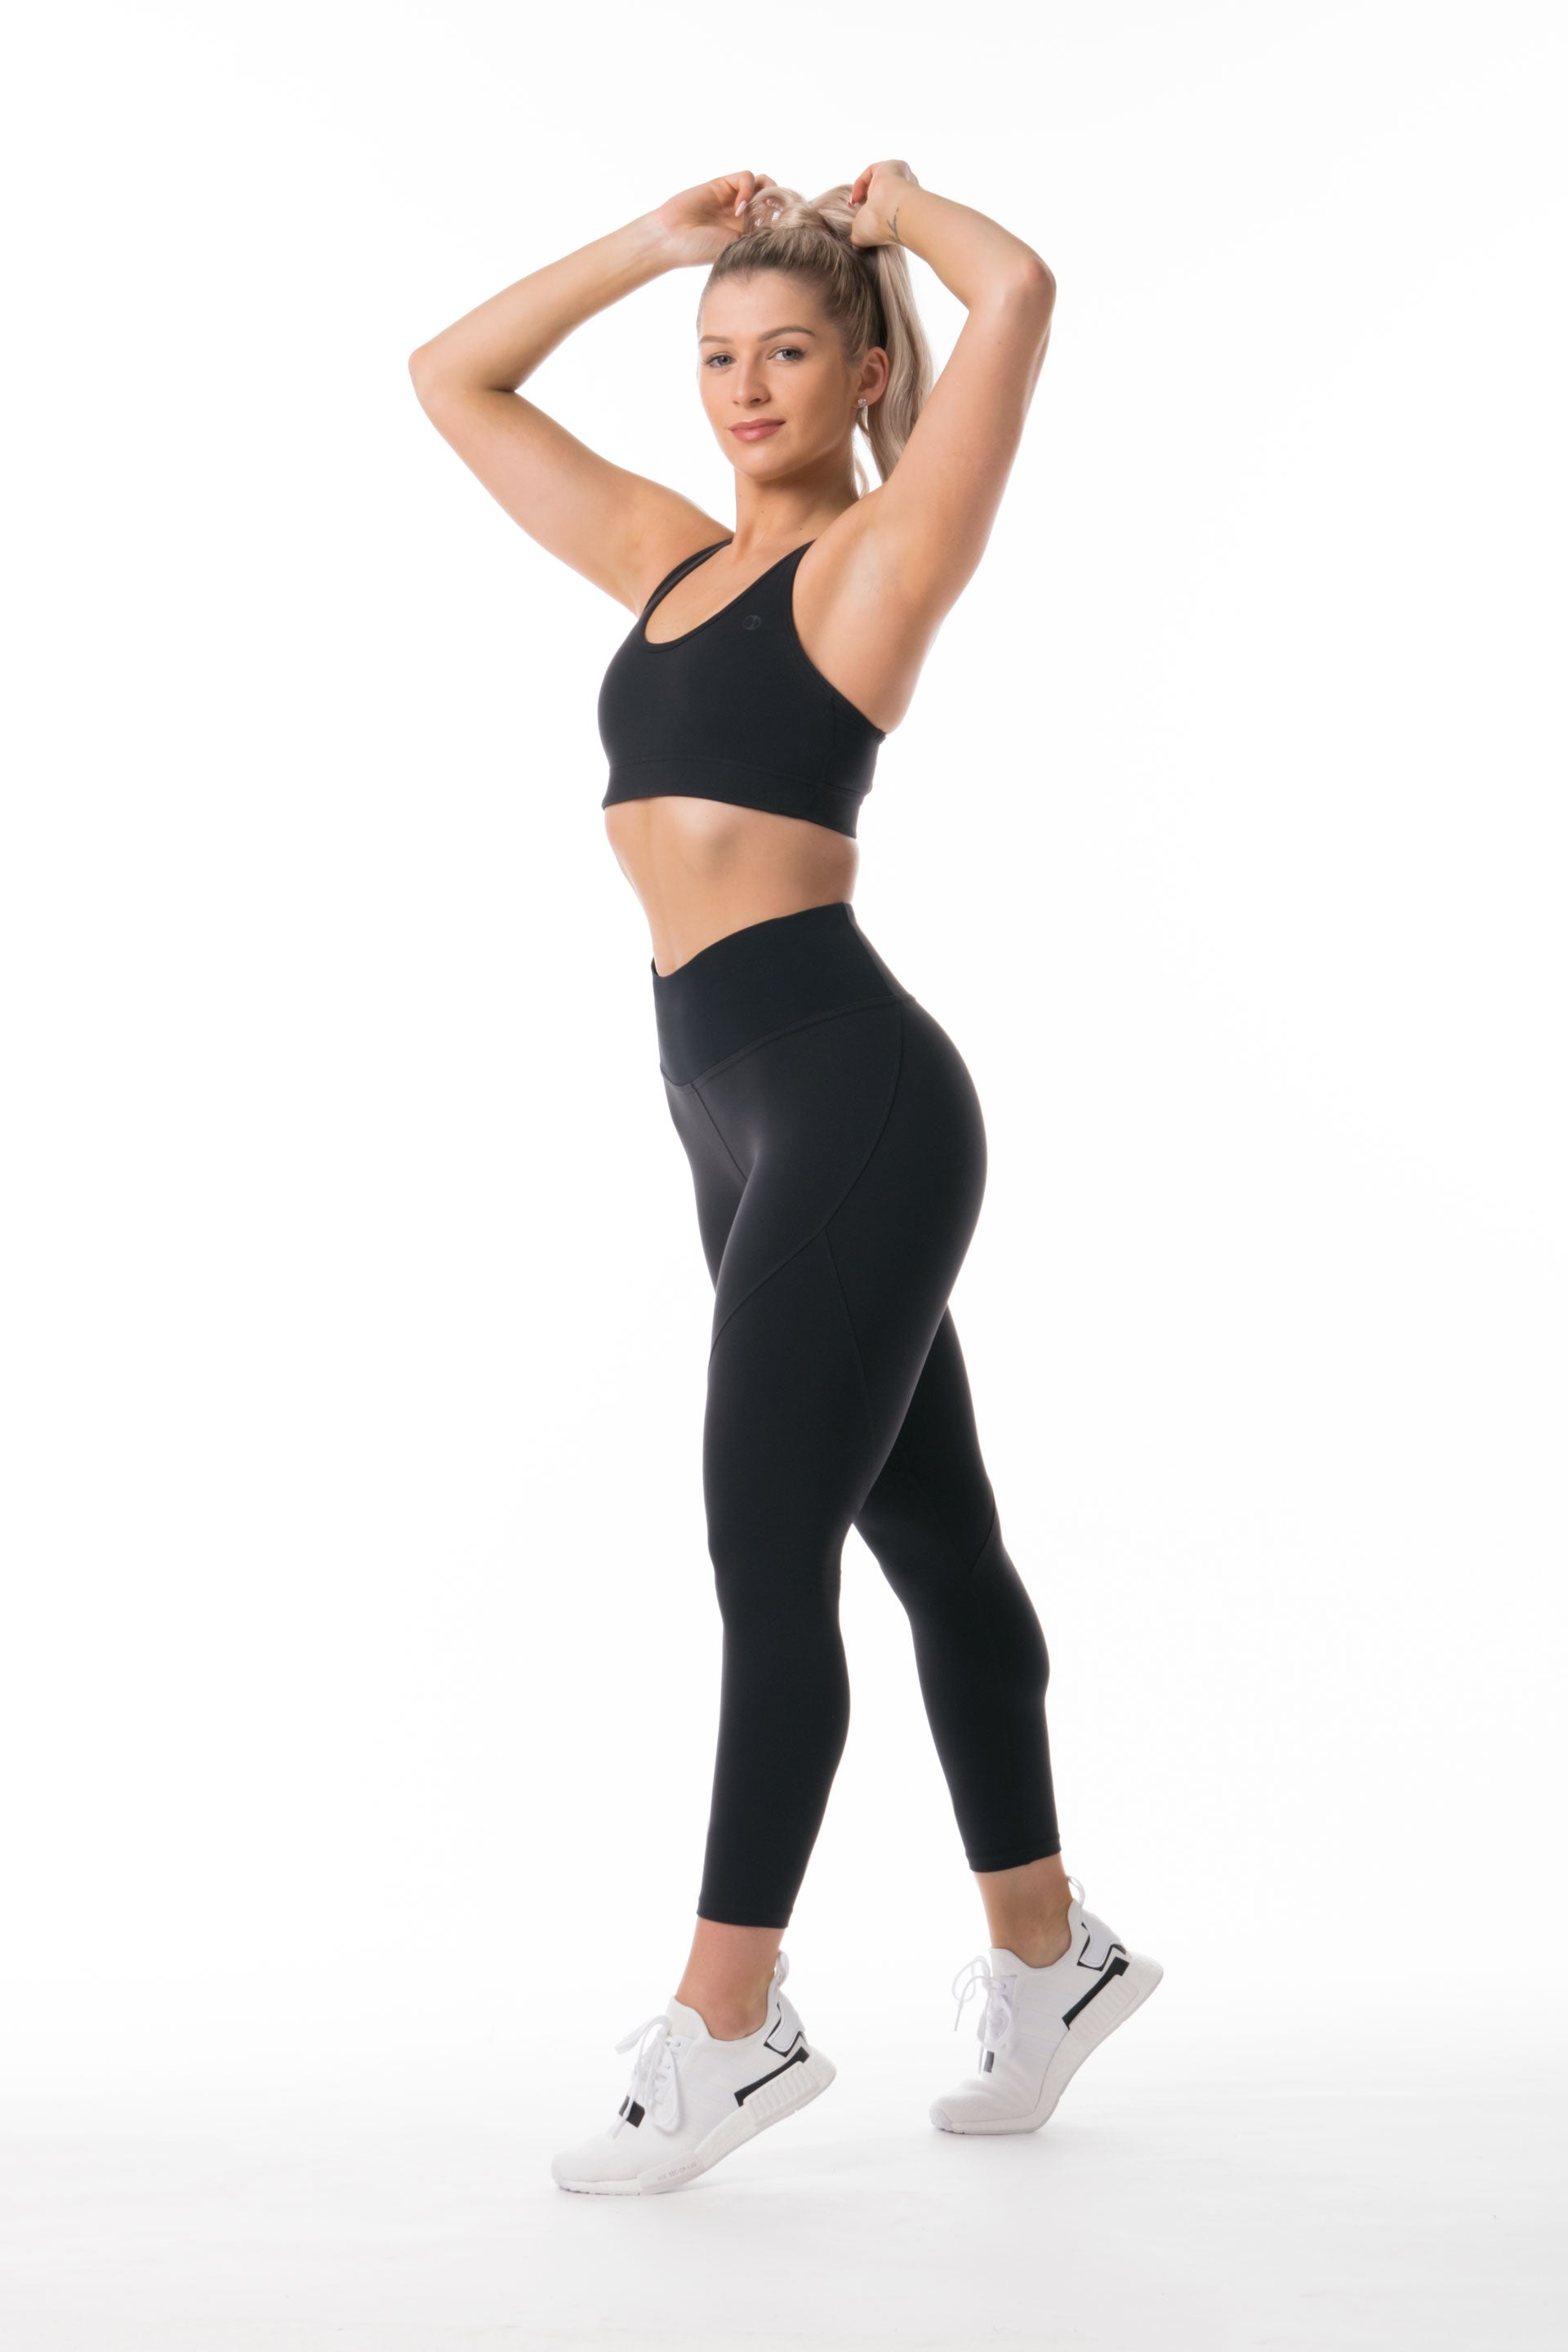 SCULPT 7/8 TIGHTS - BLACK ( OLD VERSION) WHITE SPANDEX ) Size XS only